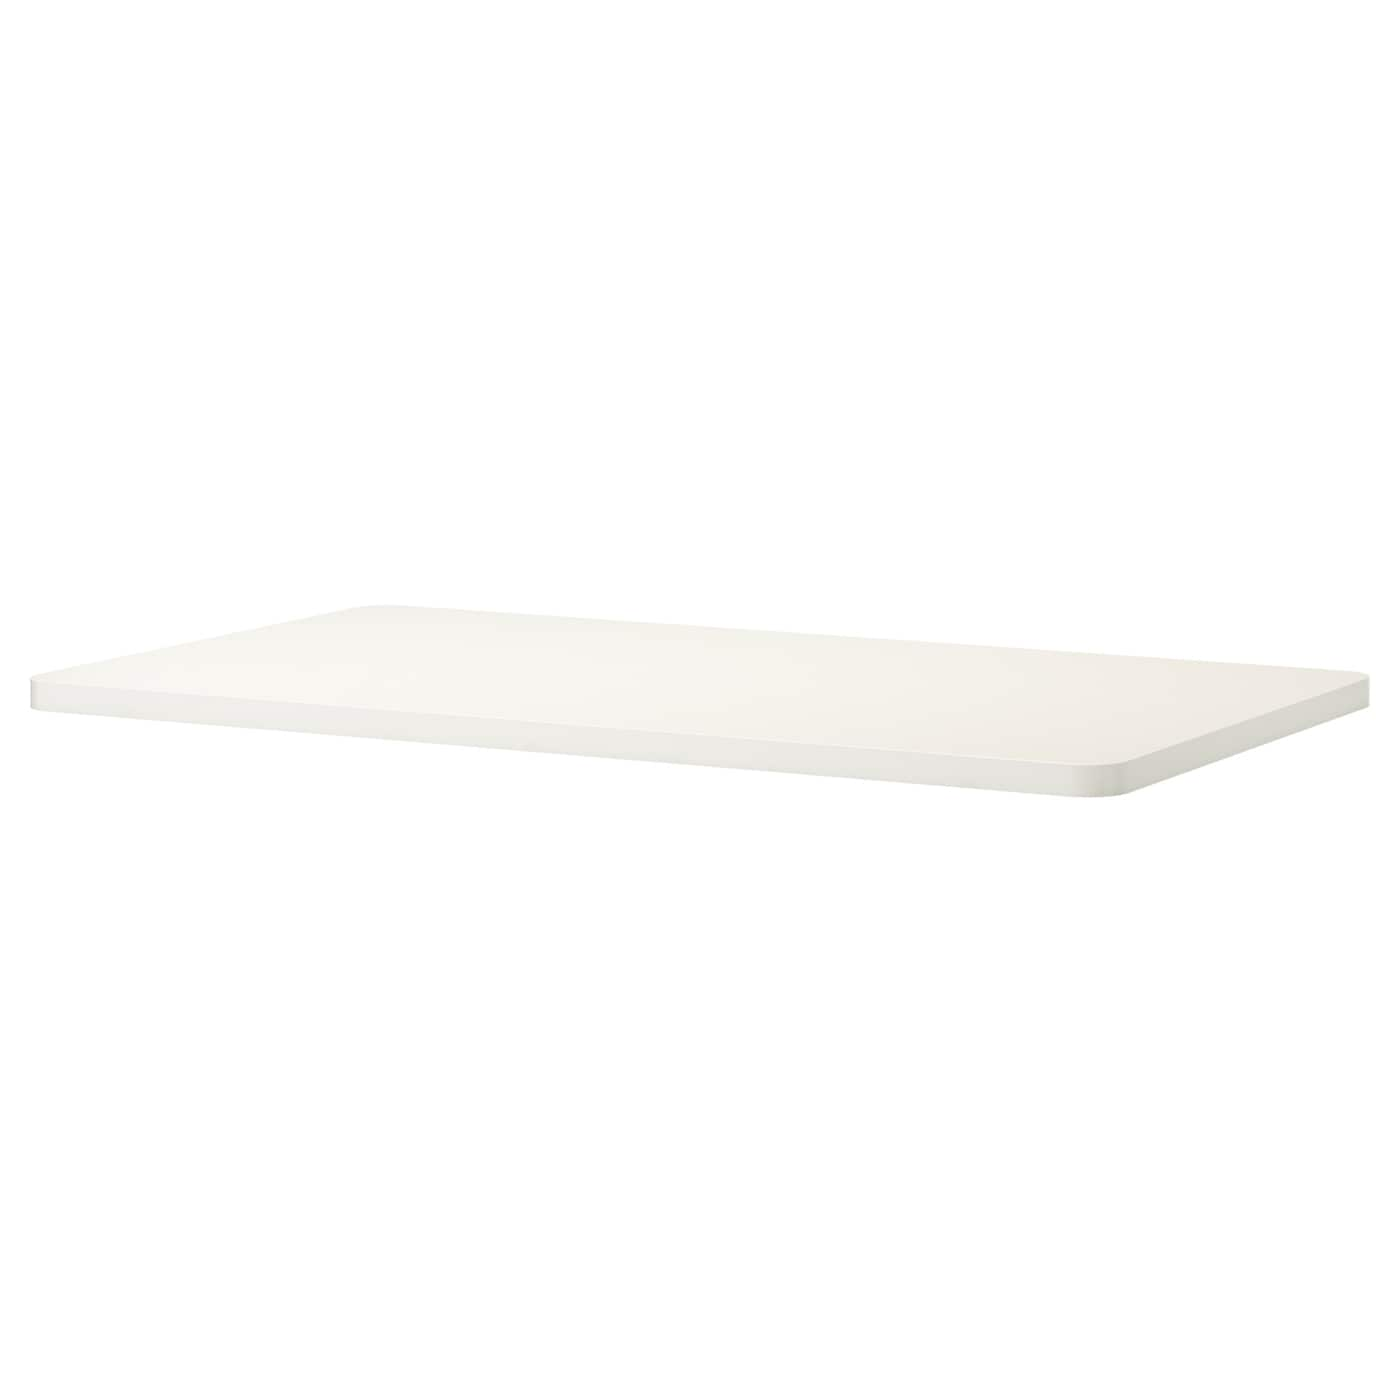 rydeb ck table top white 150x78x3 7 cm ikea. Black Bedroom Furniture Sets. Home Design Ideas